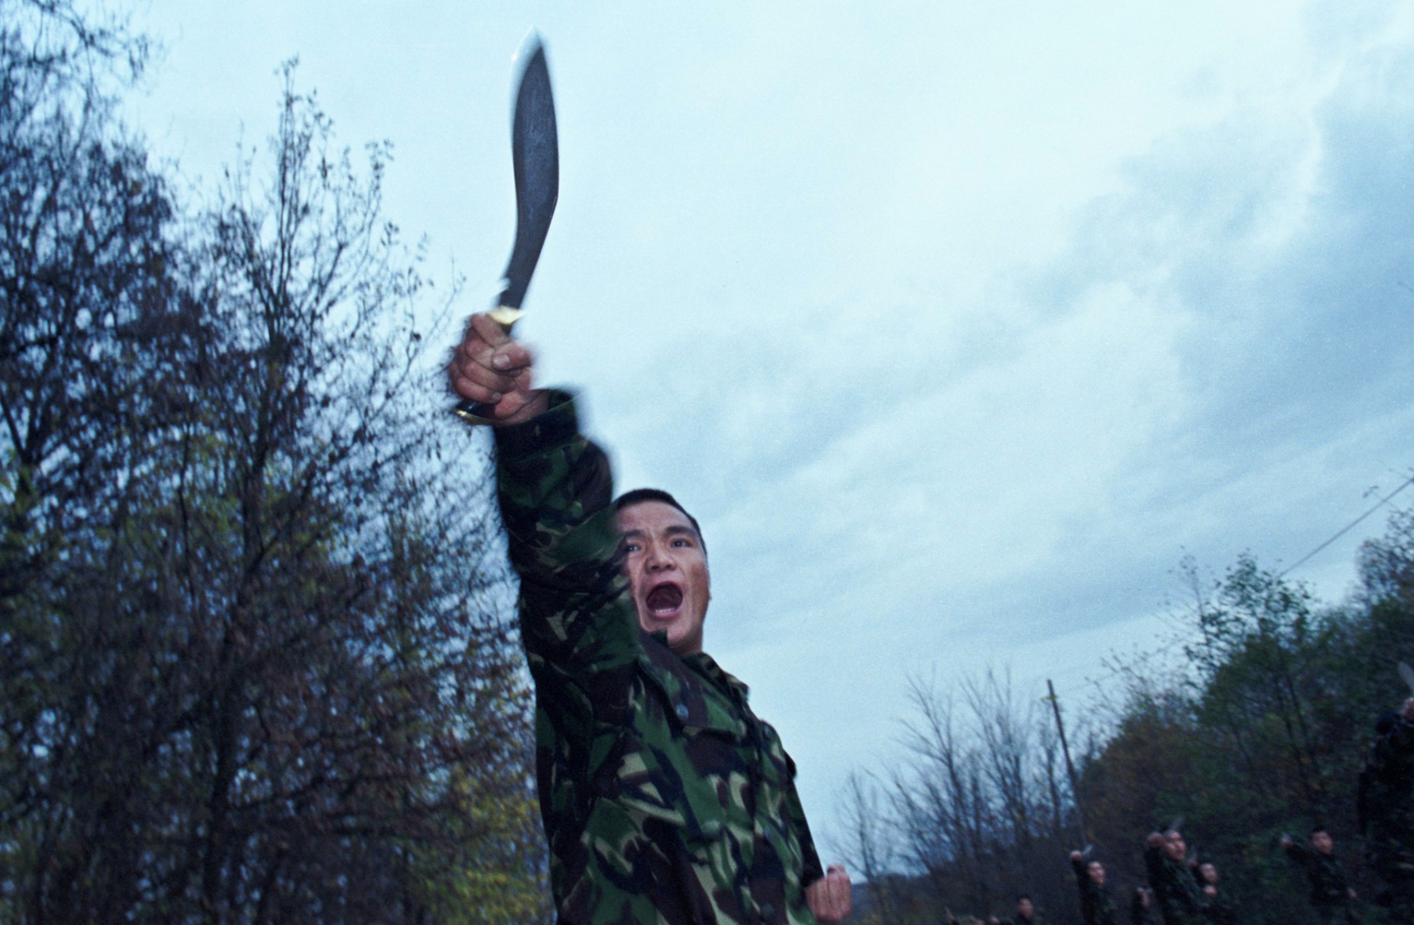 Combat_training_with_kukri__Bosnia